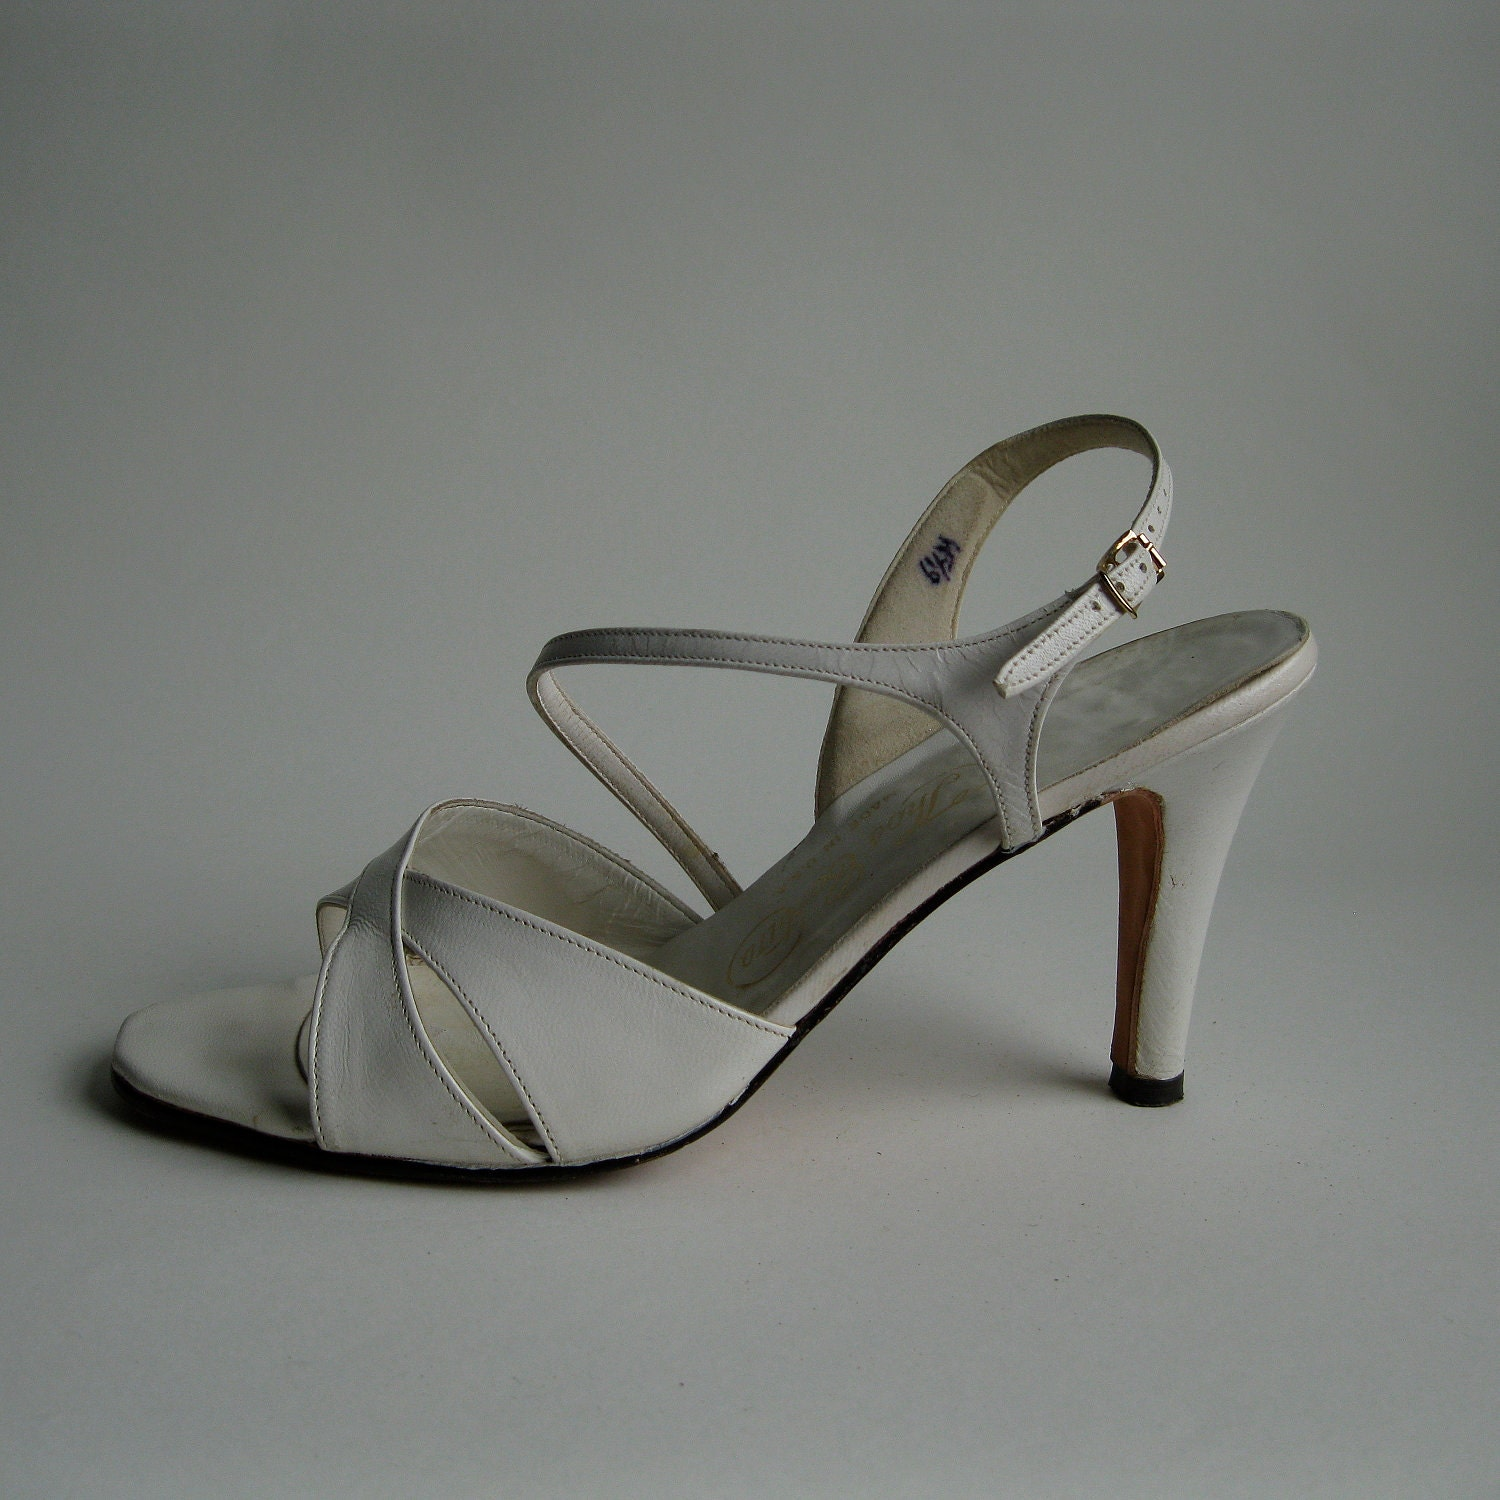 Vintage 1970s White Wedding Shoes High Heel Sandal Bridal